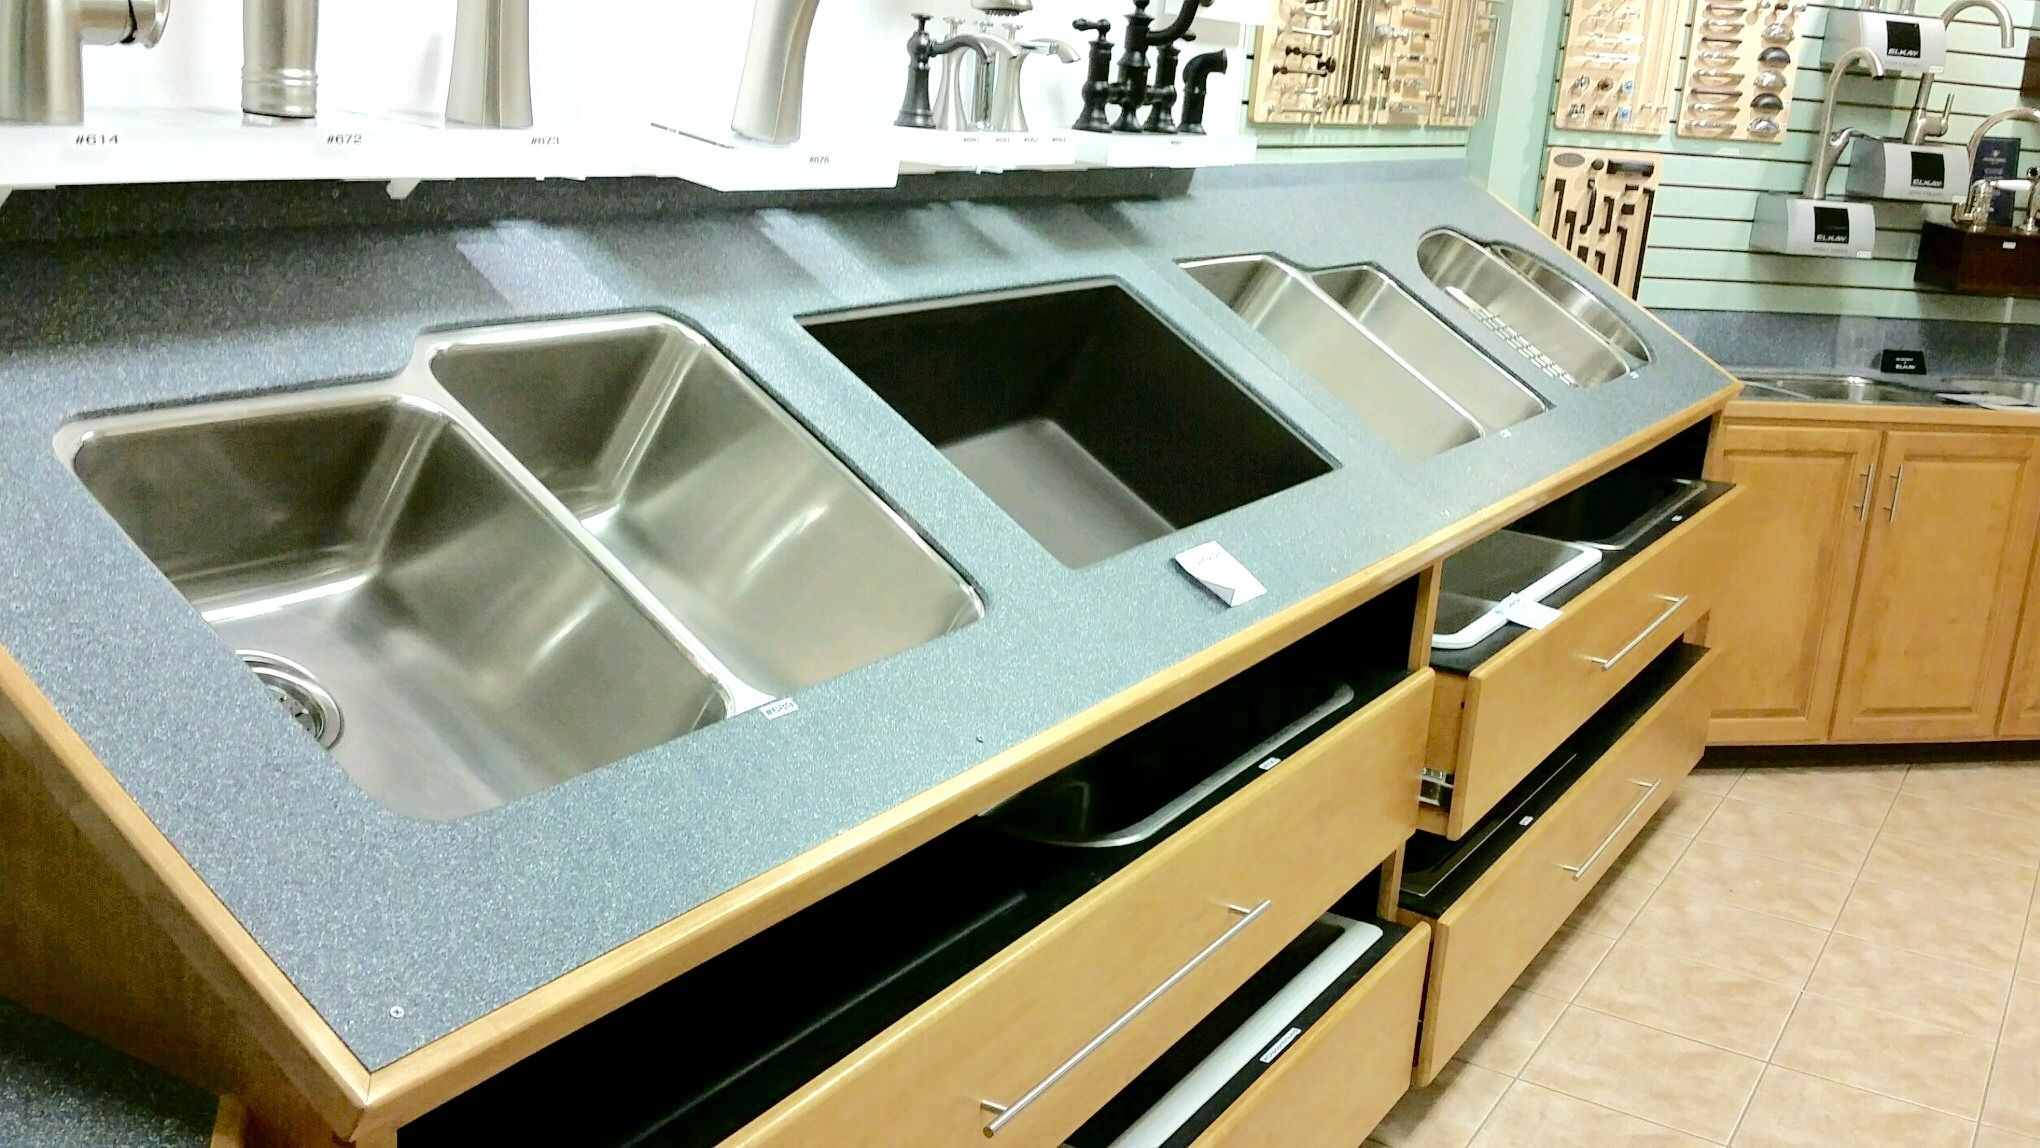 Kitchen sink display in Northamtpon, MA | Northampton ...